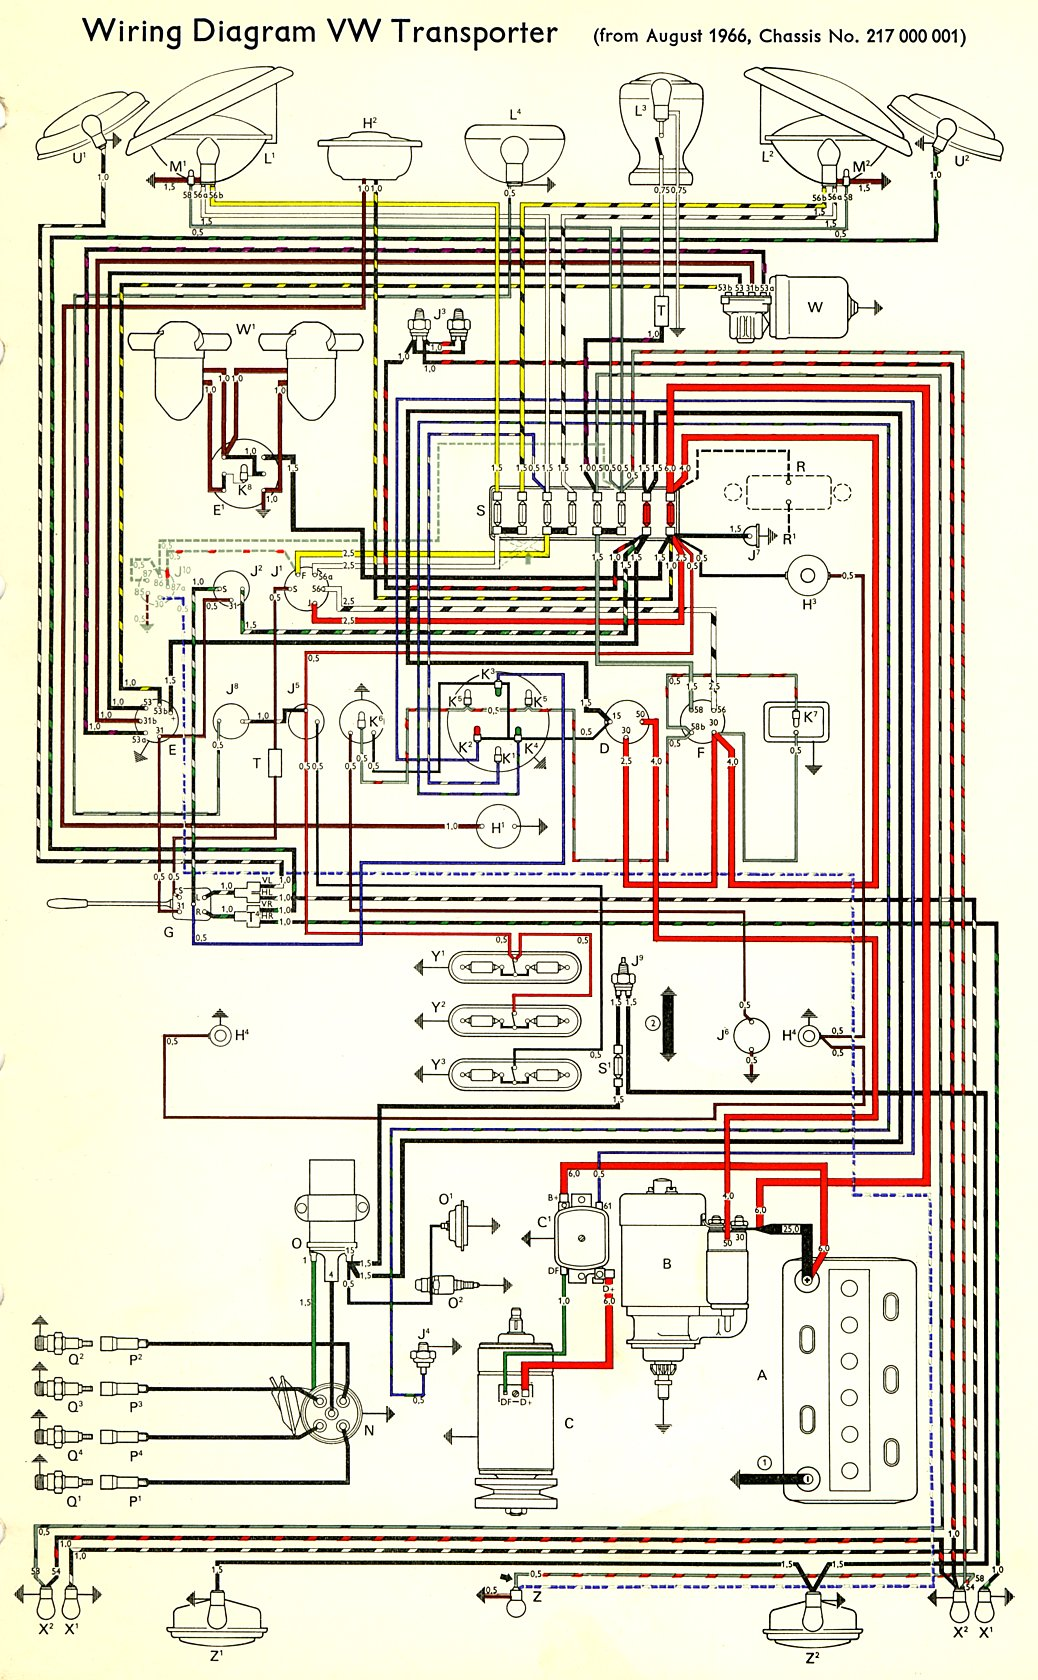 1967 vw beetle wiring diagram schematics wiring diagrams u2022 rh  schoosretailstores com VW Beetle Fuse Box Diagram 1998 VW Beetle Fuse Box  Diagram 2005